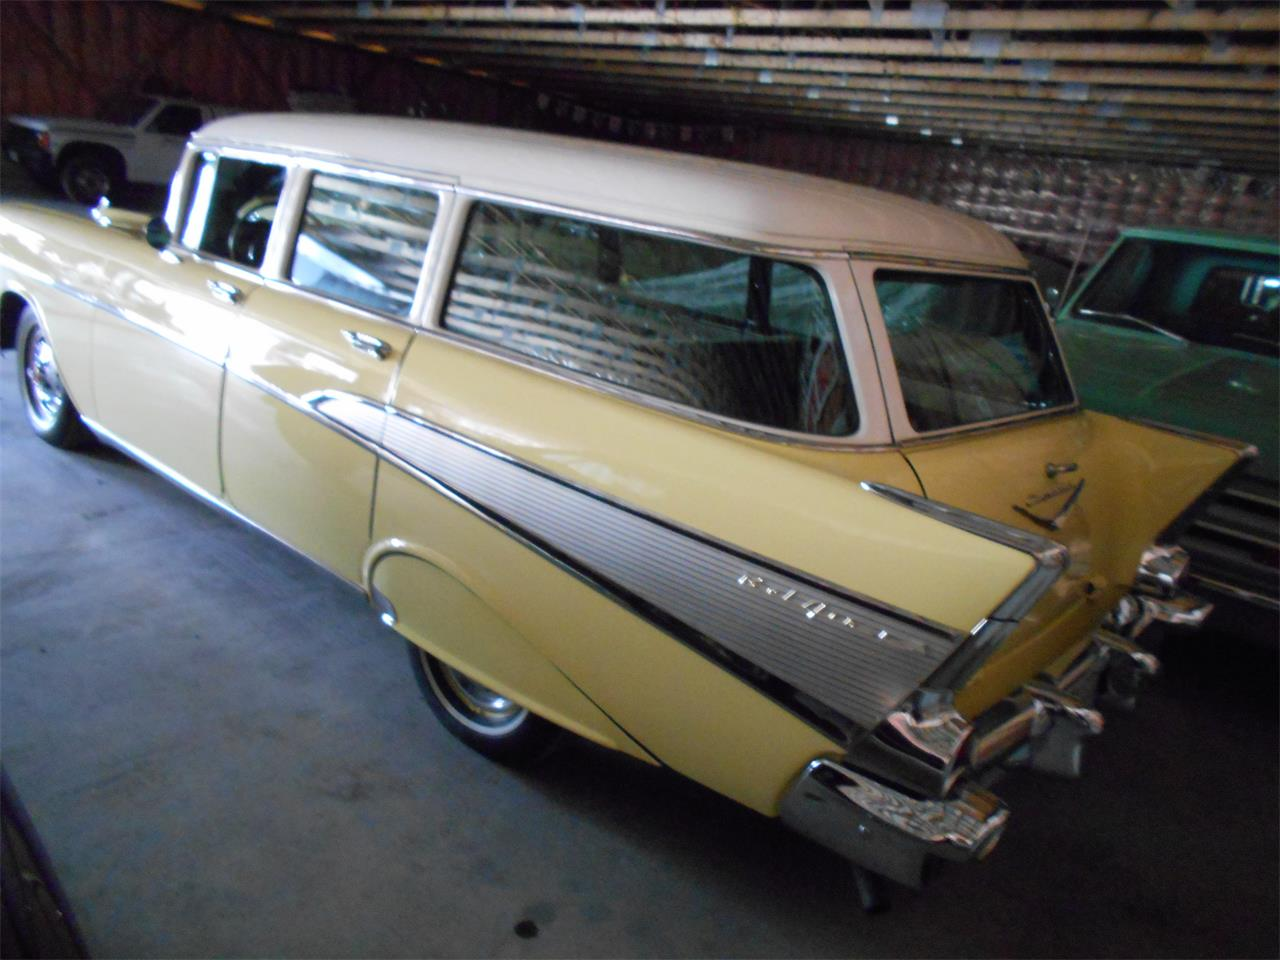 Large Picture of 1957 Chevrolet Bel Air Wagon - $22,900.00 Offered by a Private Seller - N7TI